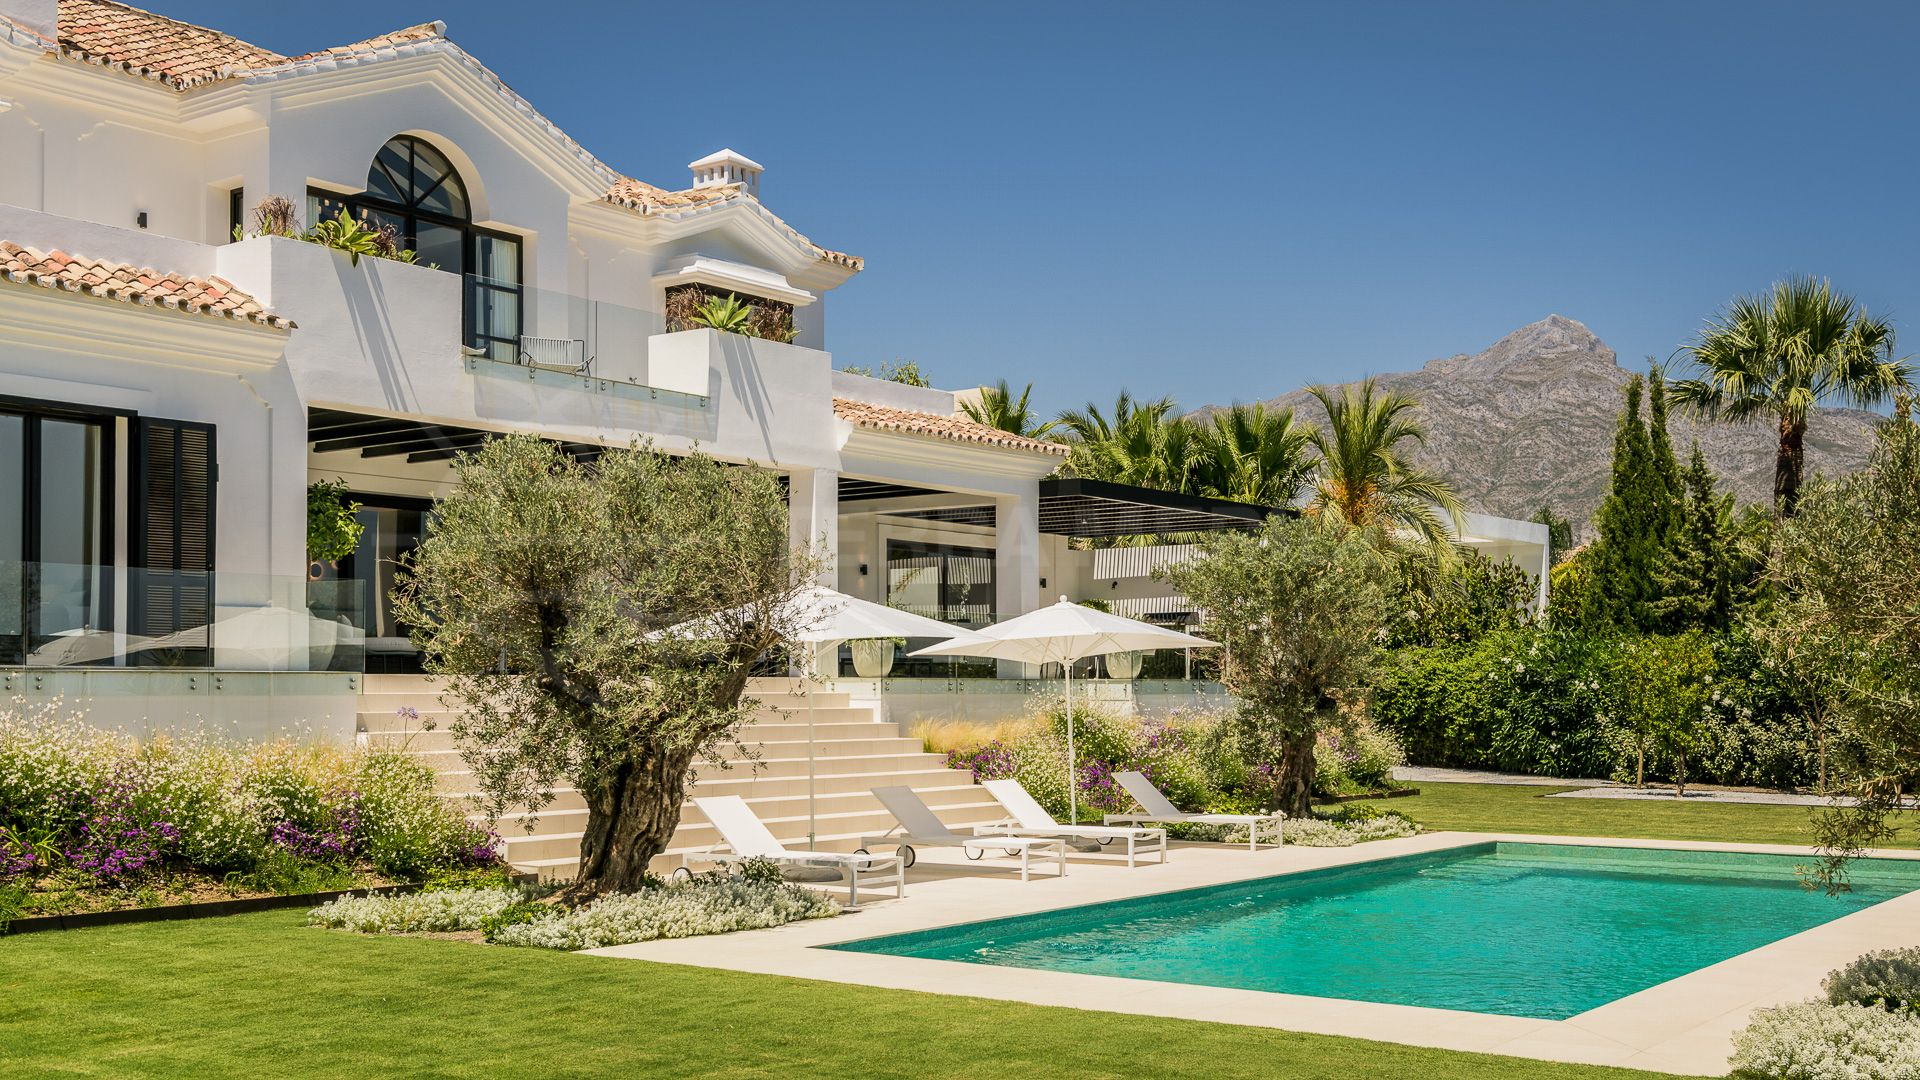 Escape the city and come to Marbella to benefit from the outdoor lifestyle